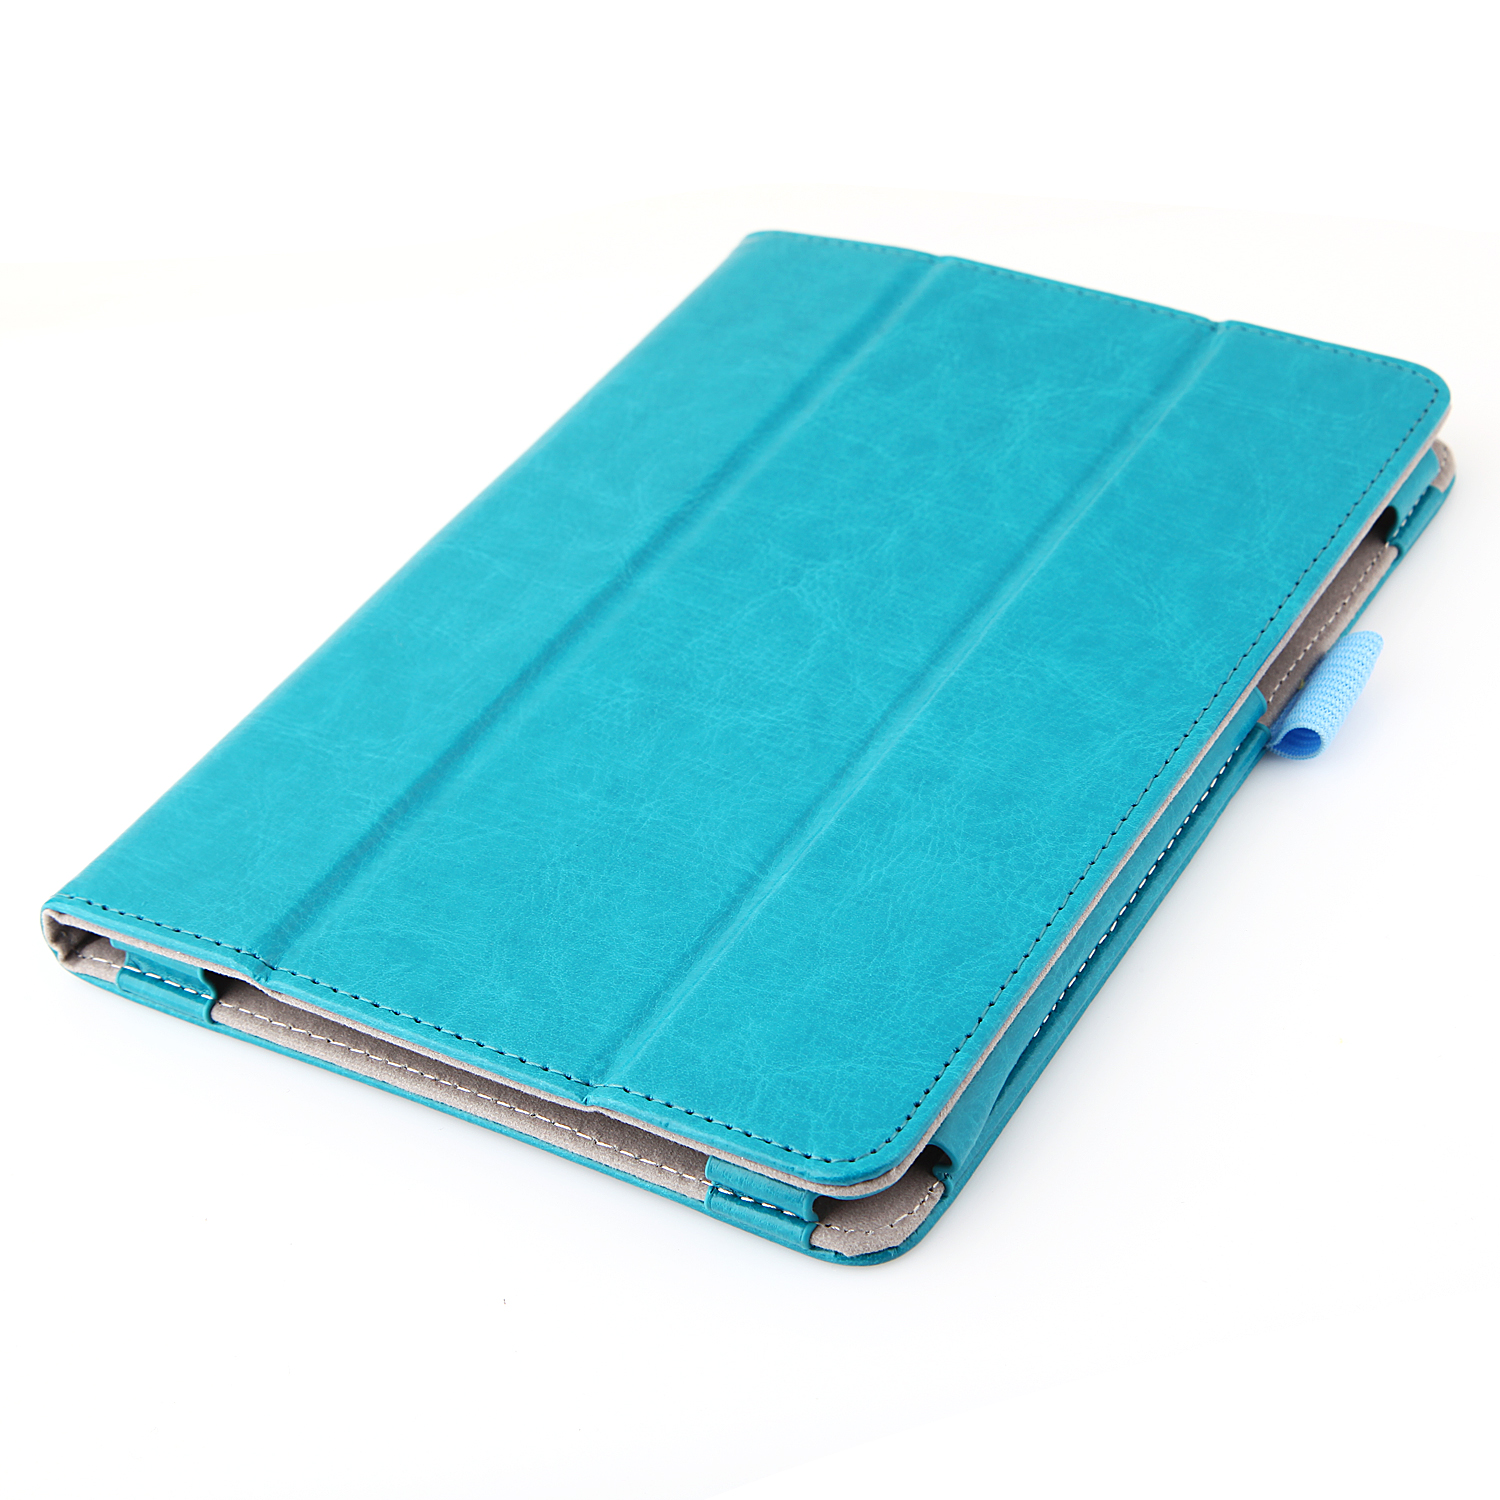 Protective PU Leather Stand Case Cover for the Mi Pad - Blue